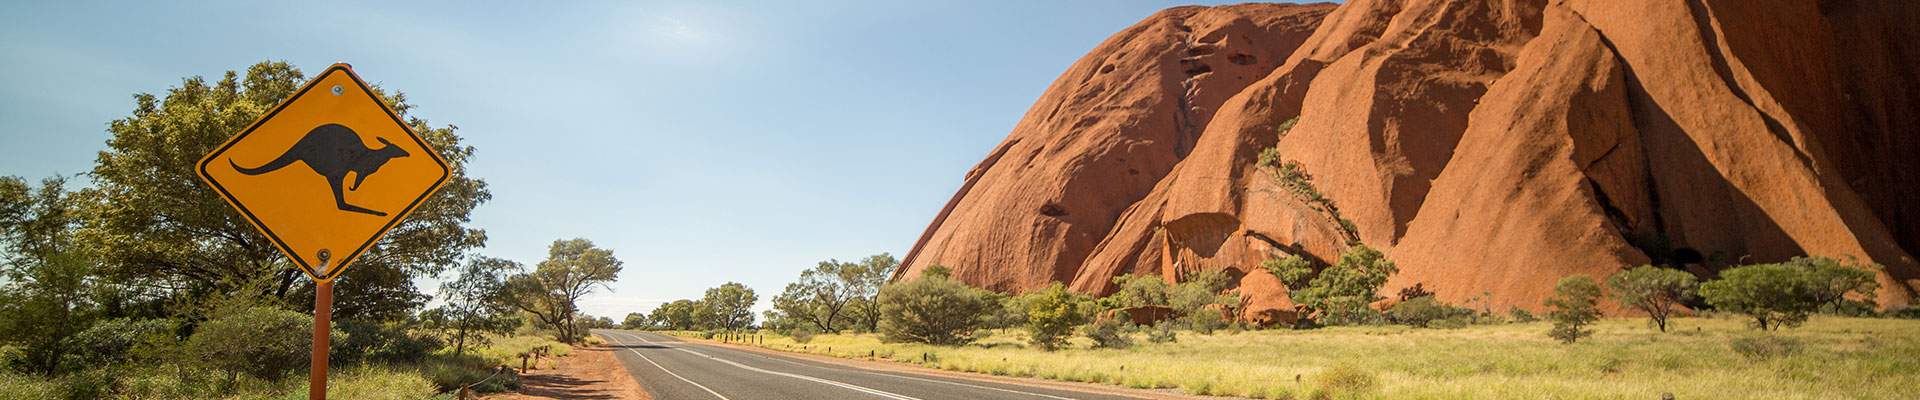 Fantasy RV Tours: 6 Day Real Outback Add-on (06OROP-042722)